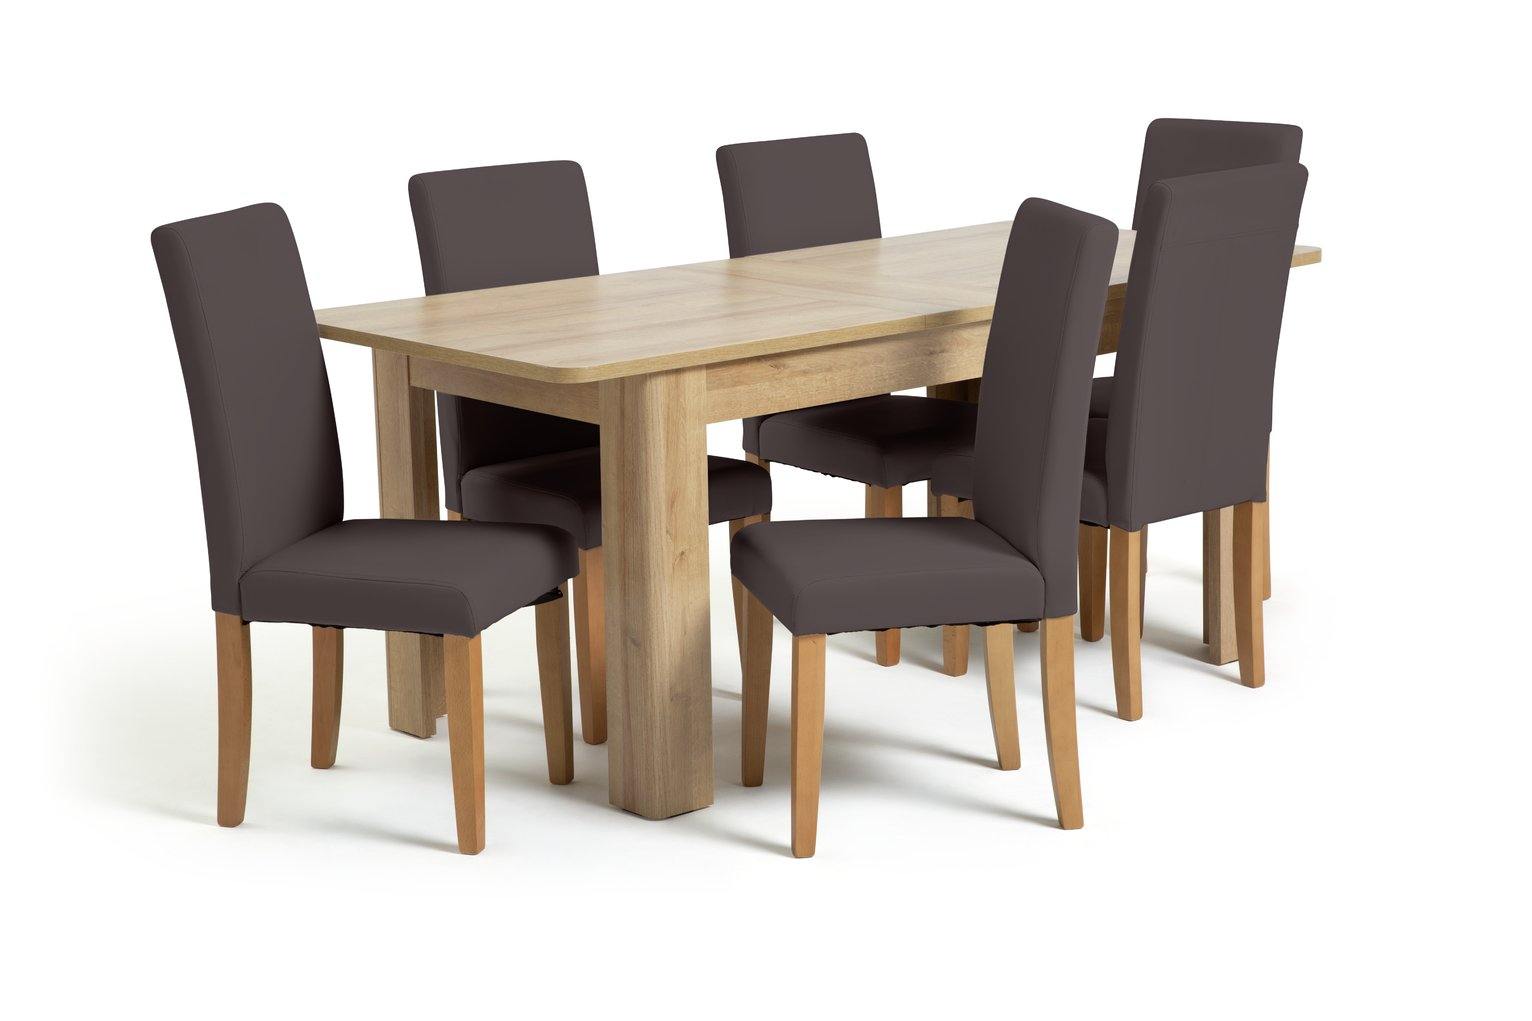 Argos Home Miami Curve Extendable Table & 6 Chairs-Chocolate review